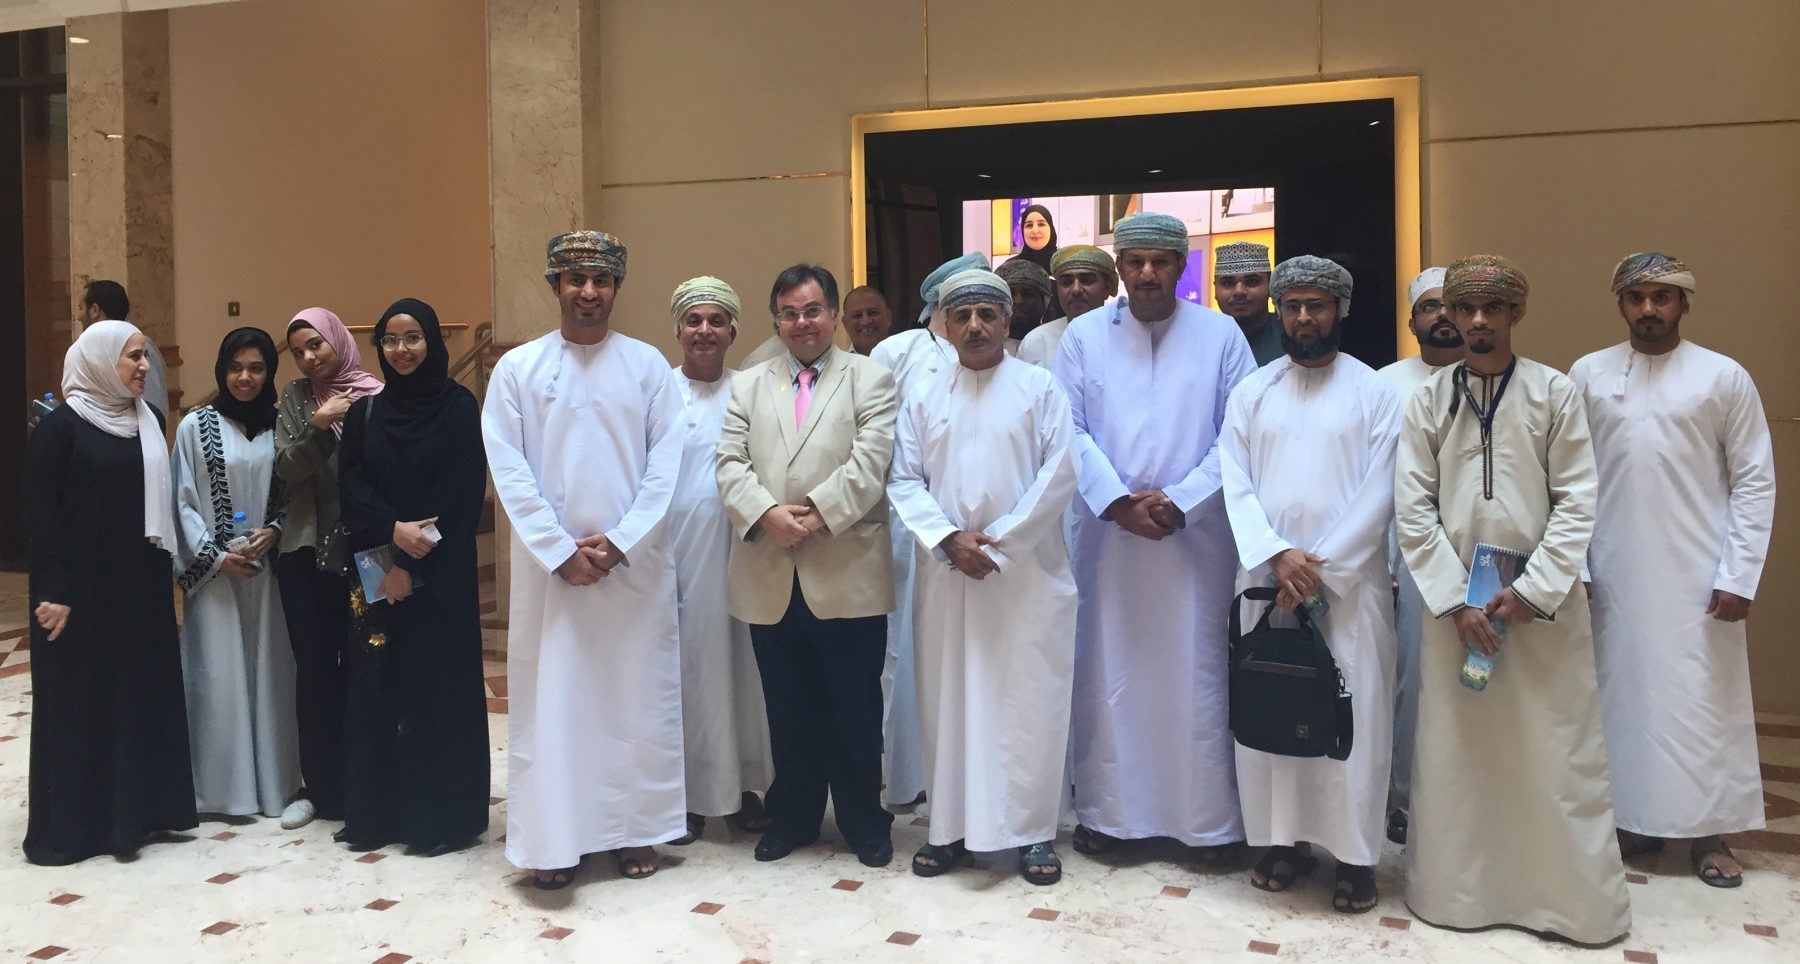 Professor Dimitrios Buhalis at the Ministry of Tourism, Sultanate of Oman